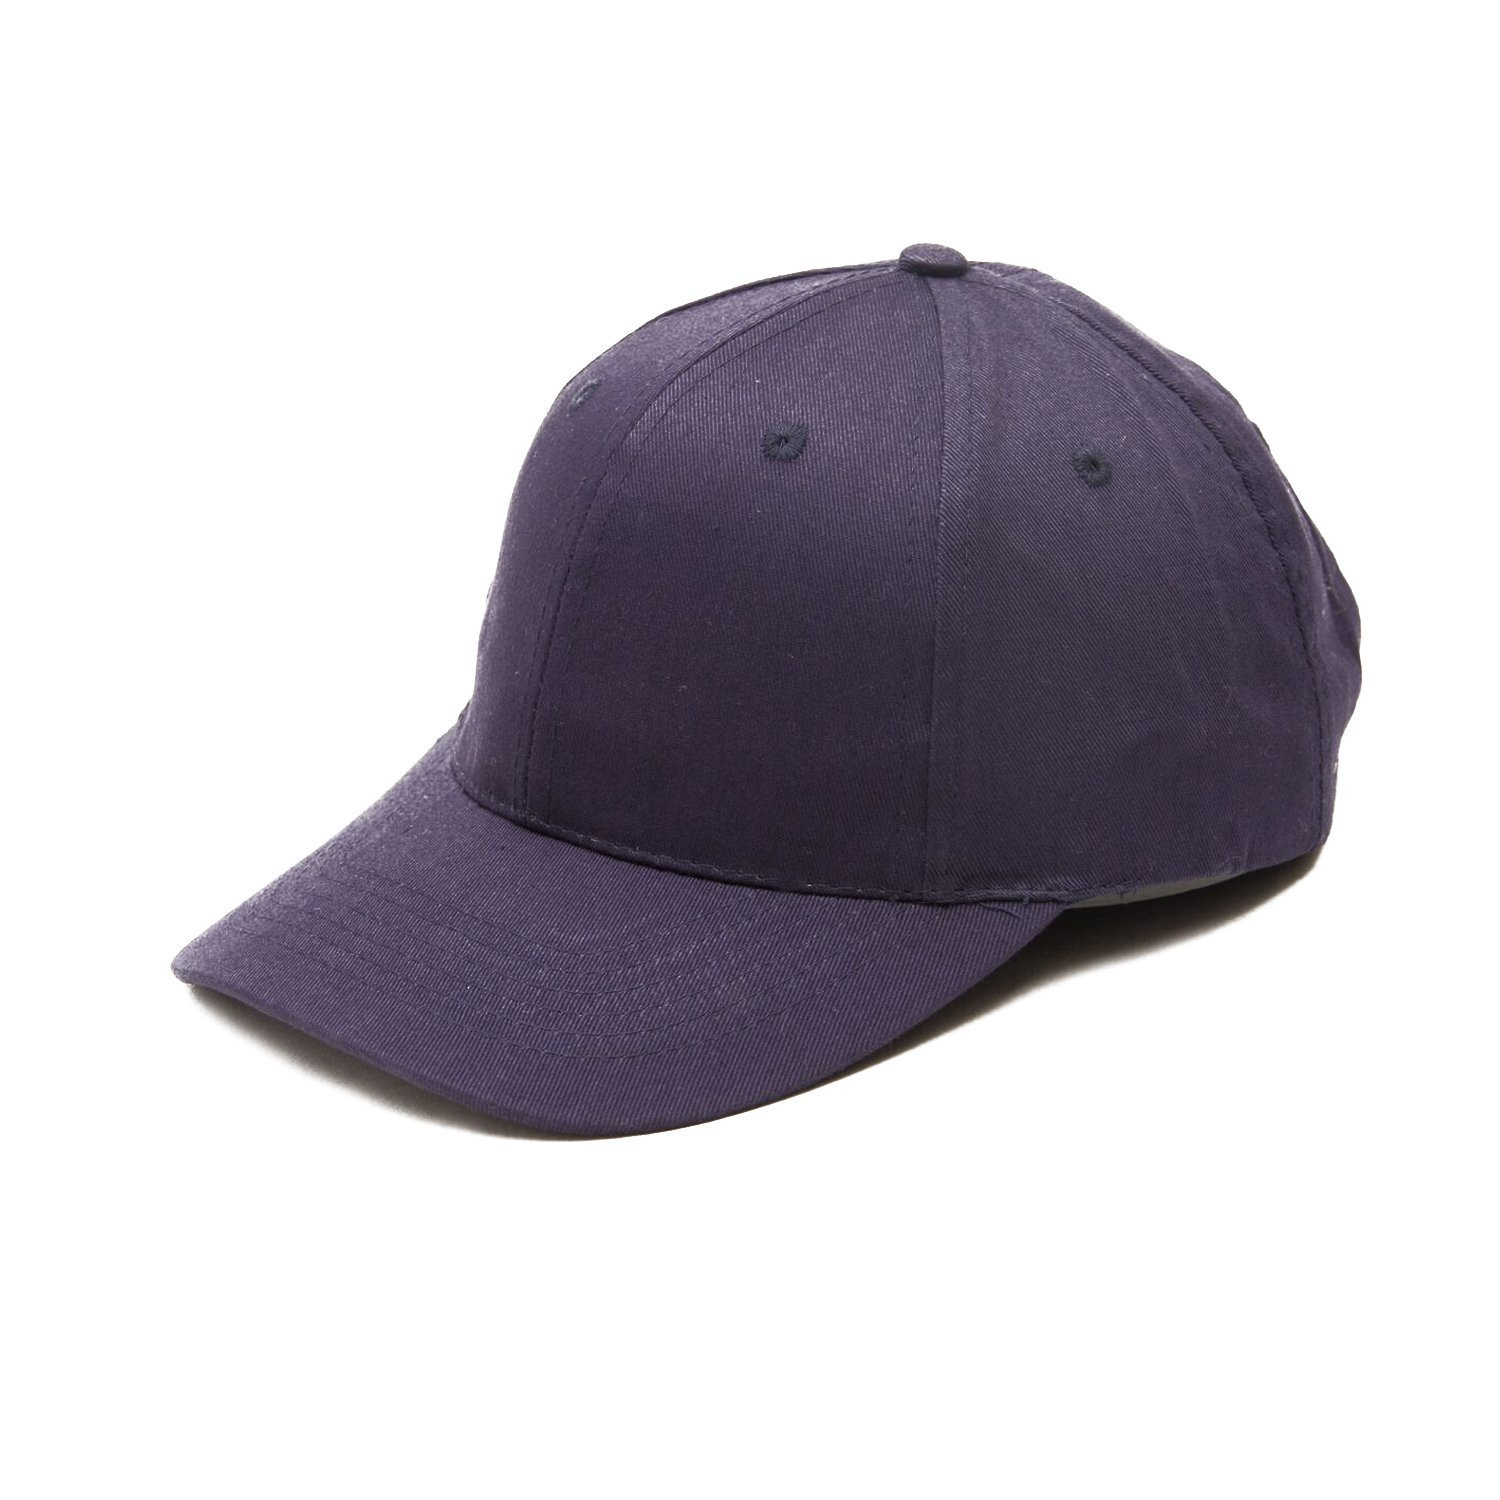 Pierre Cardin Men s Cotton Basebal Cap (Navy) - Walmart.com 296b8f4244d